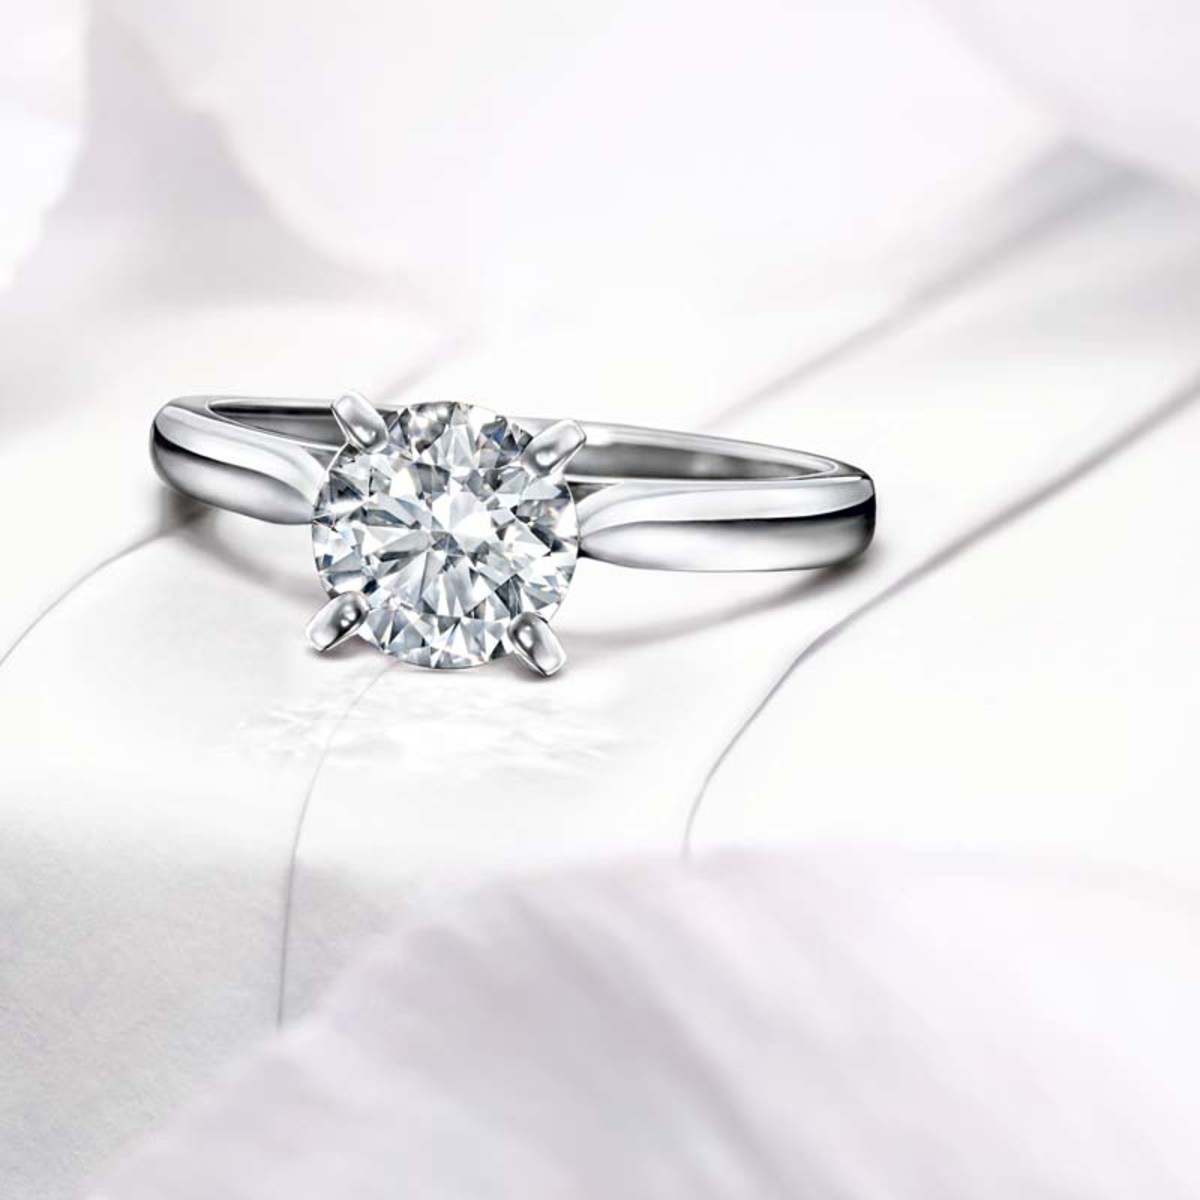 CARTIER OVAL SOLITAIRE 1895 ENGAGEMENT RING